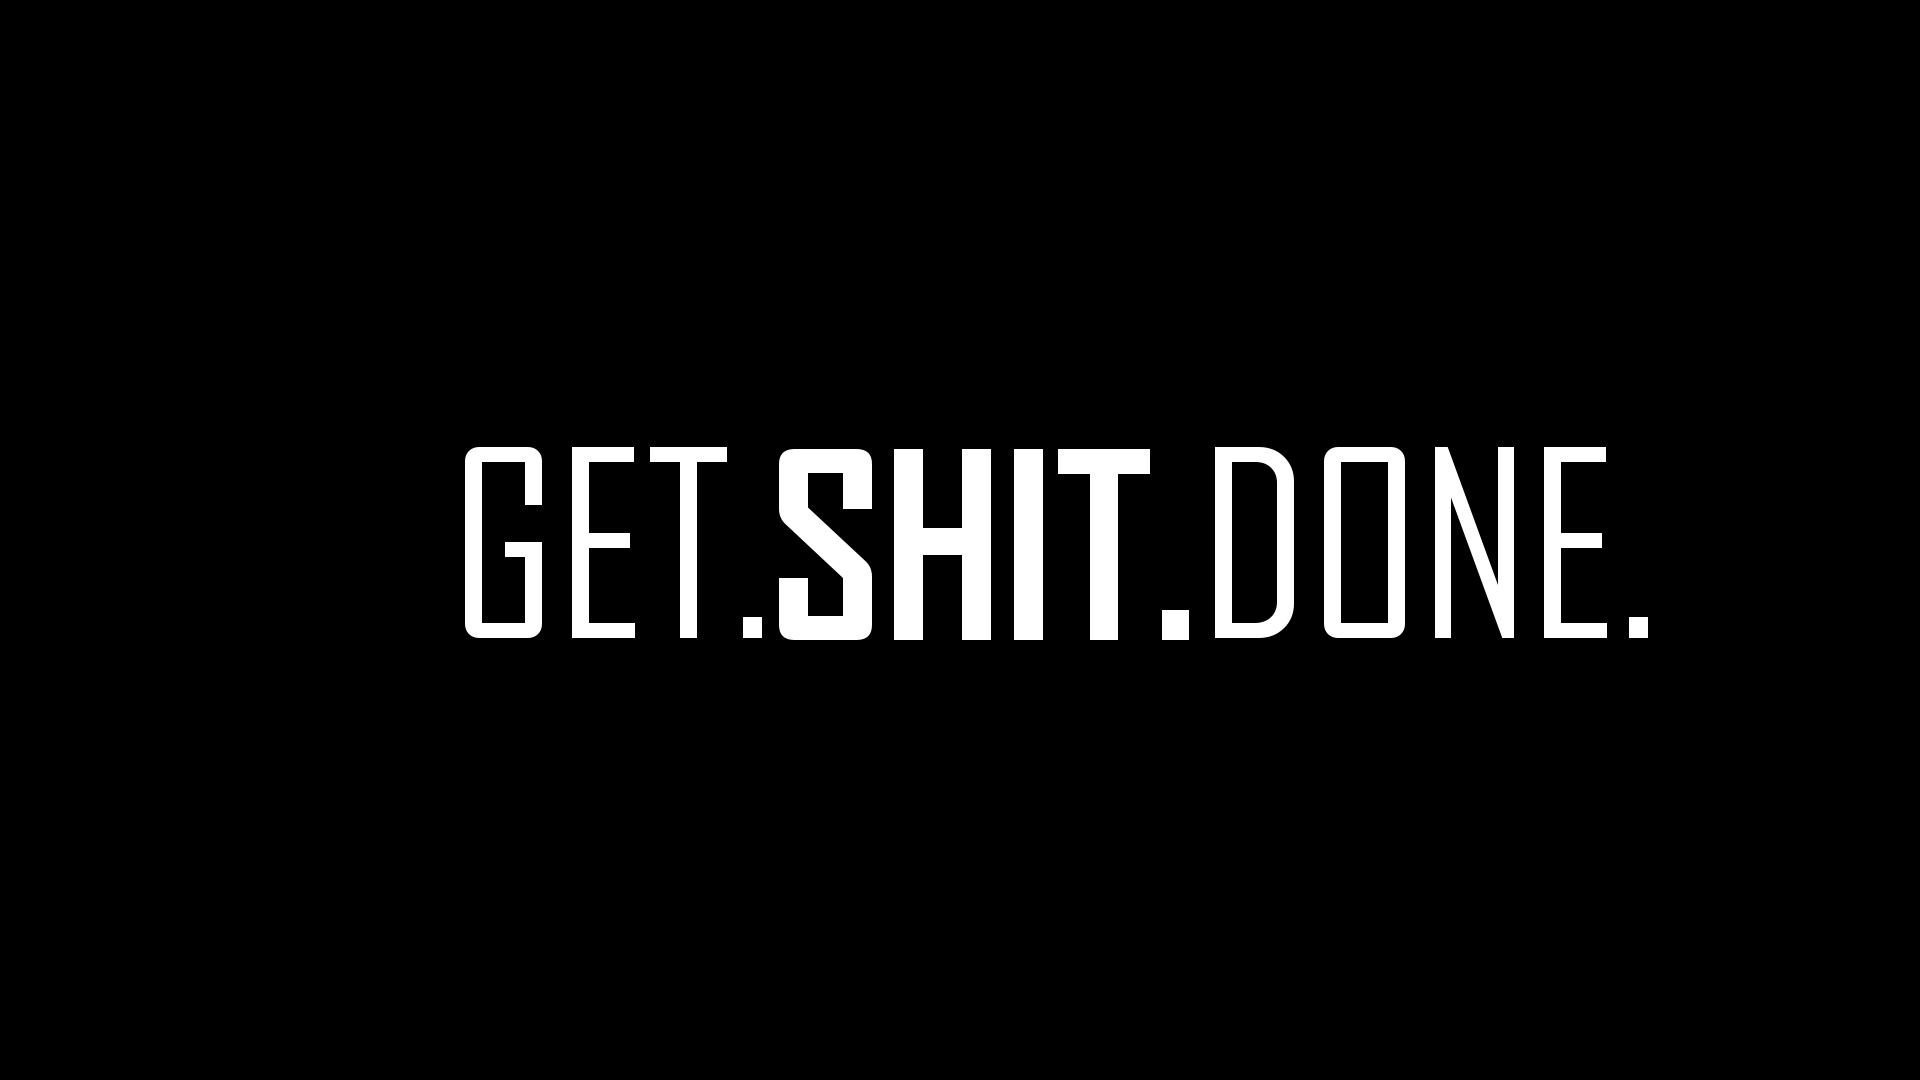 Get Shit Done with black background